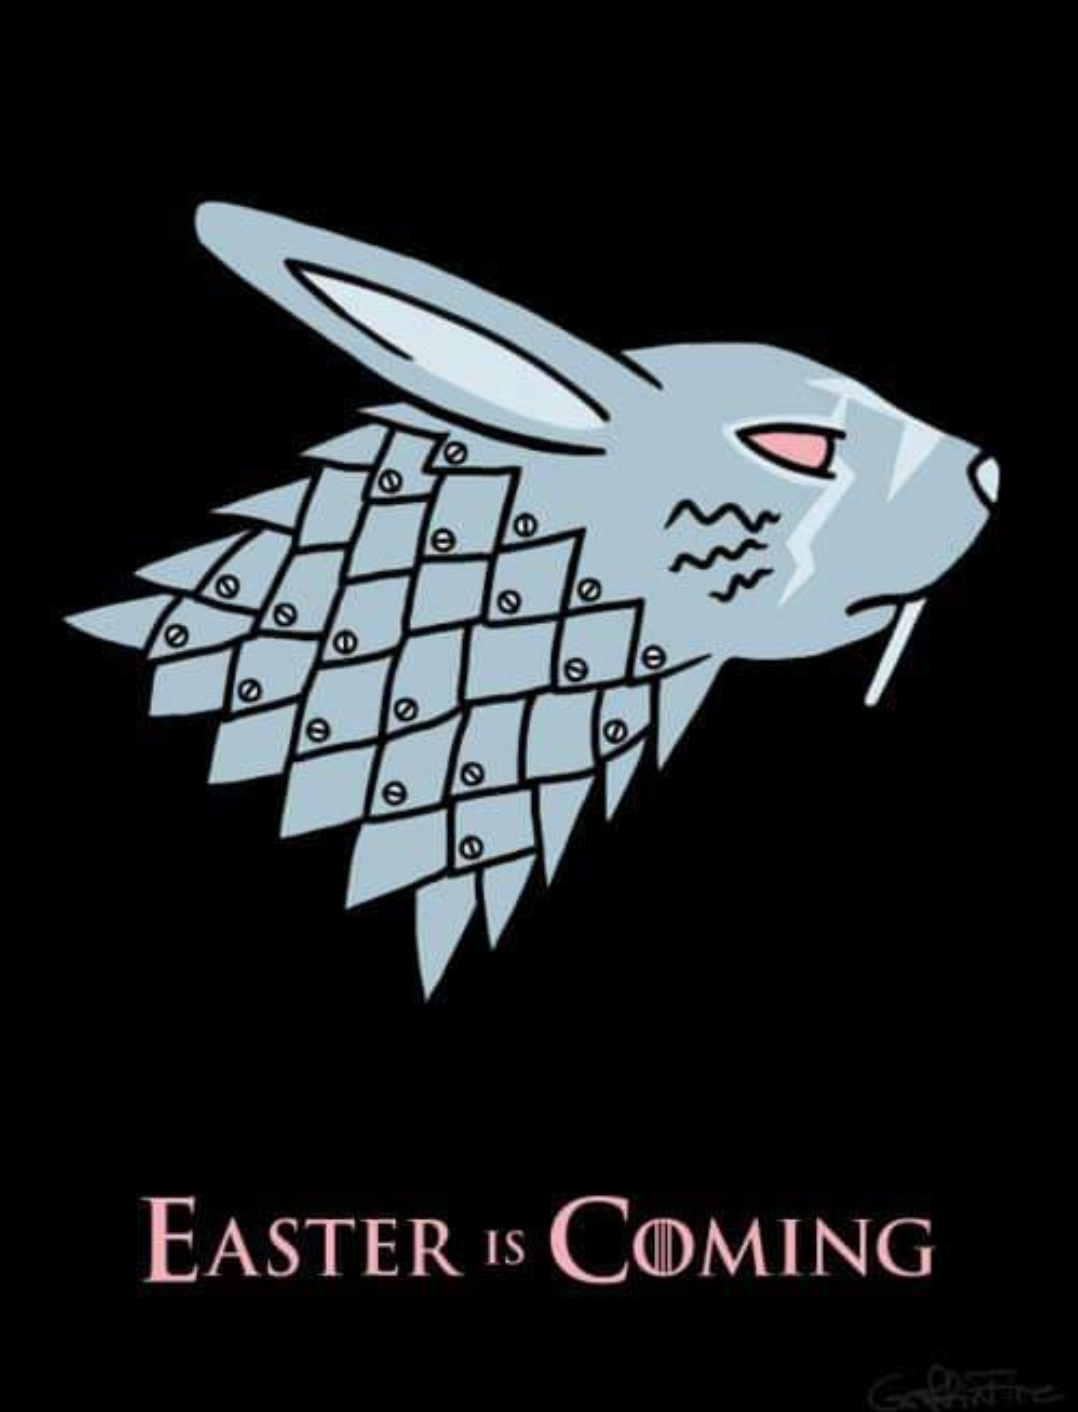 Easter is coming - meme